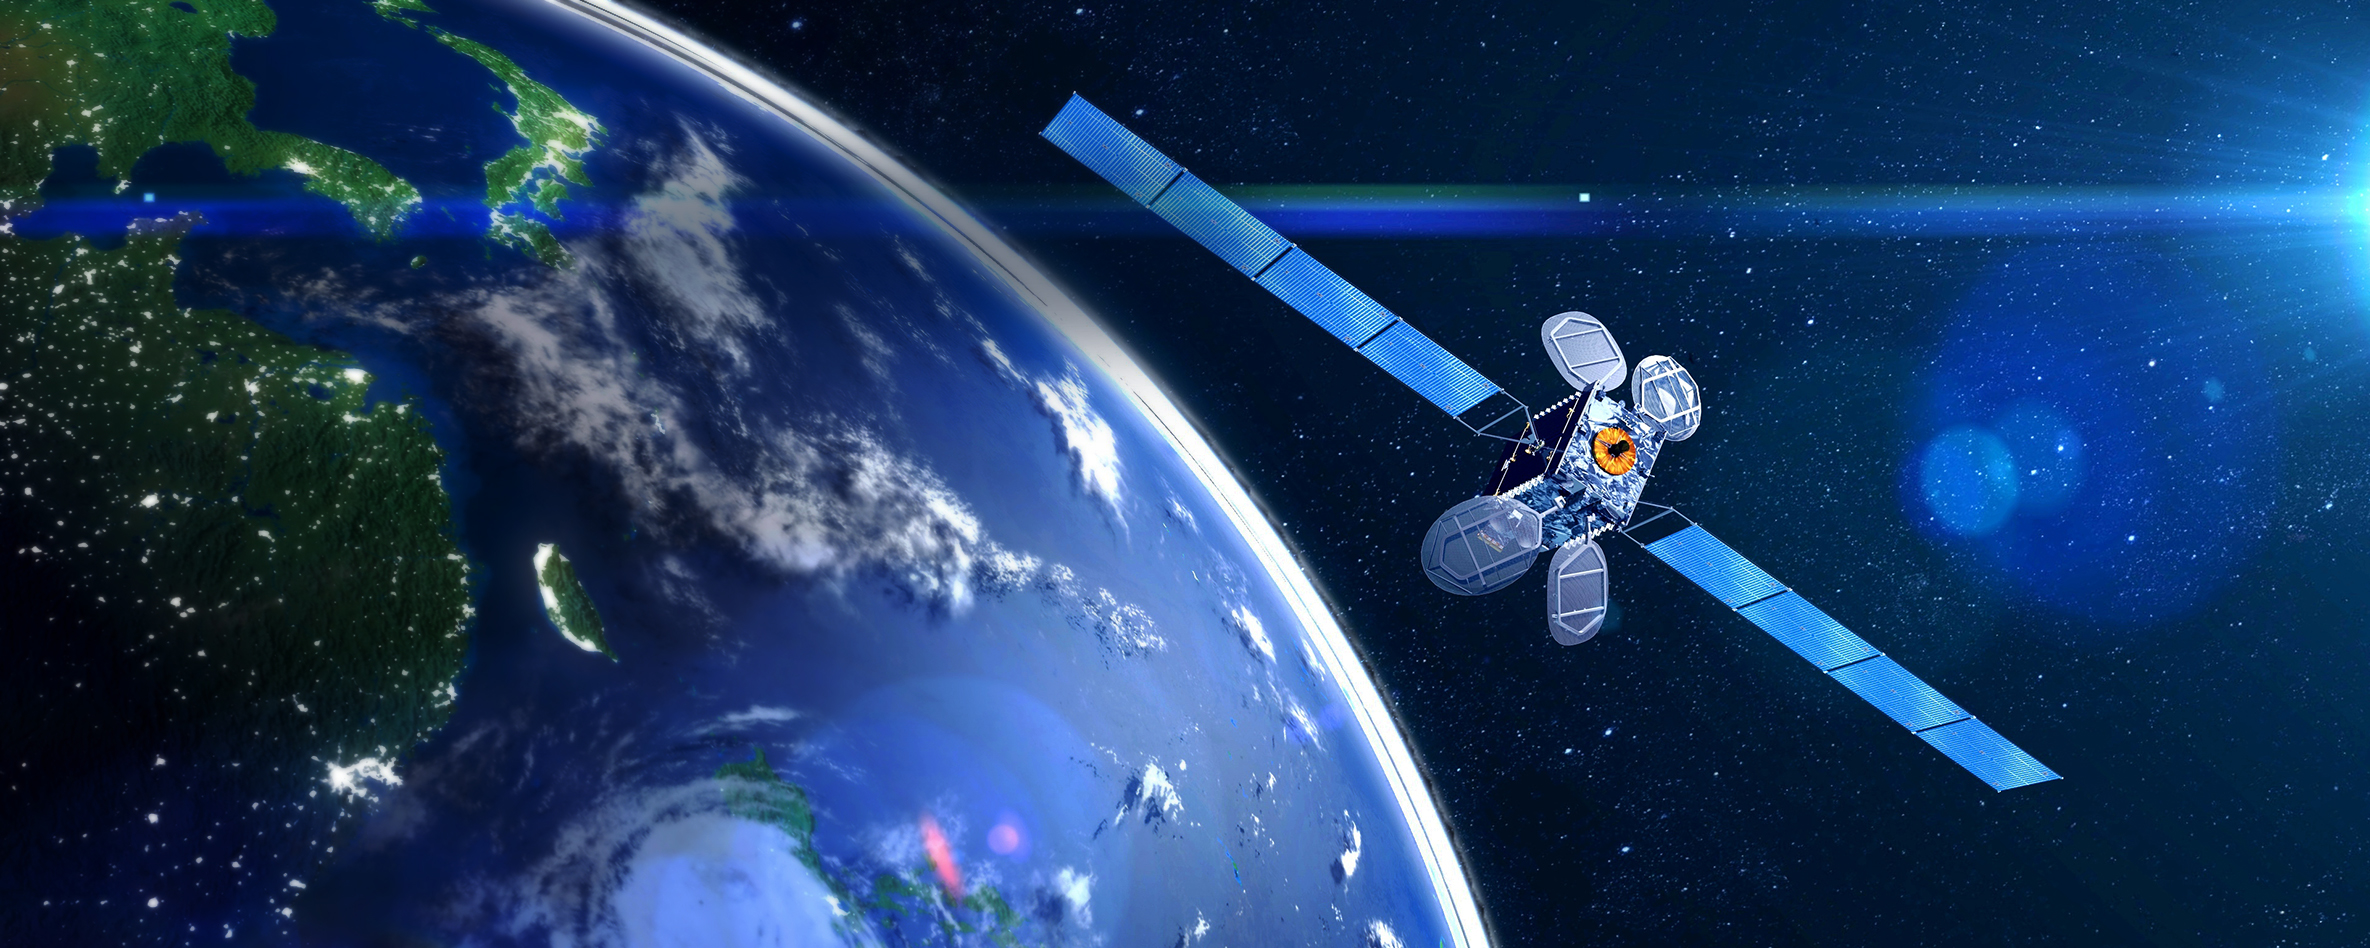 Ethiopia Building Its Own Satellite To Reduce Reliance On Foreign - Satellite image